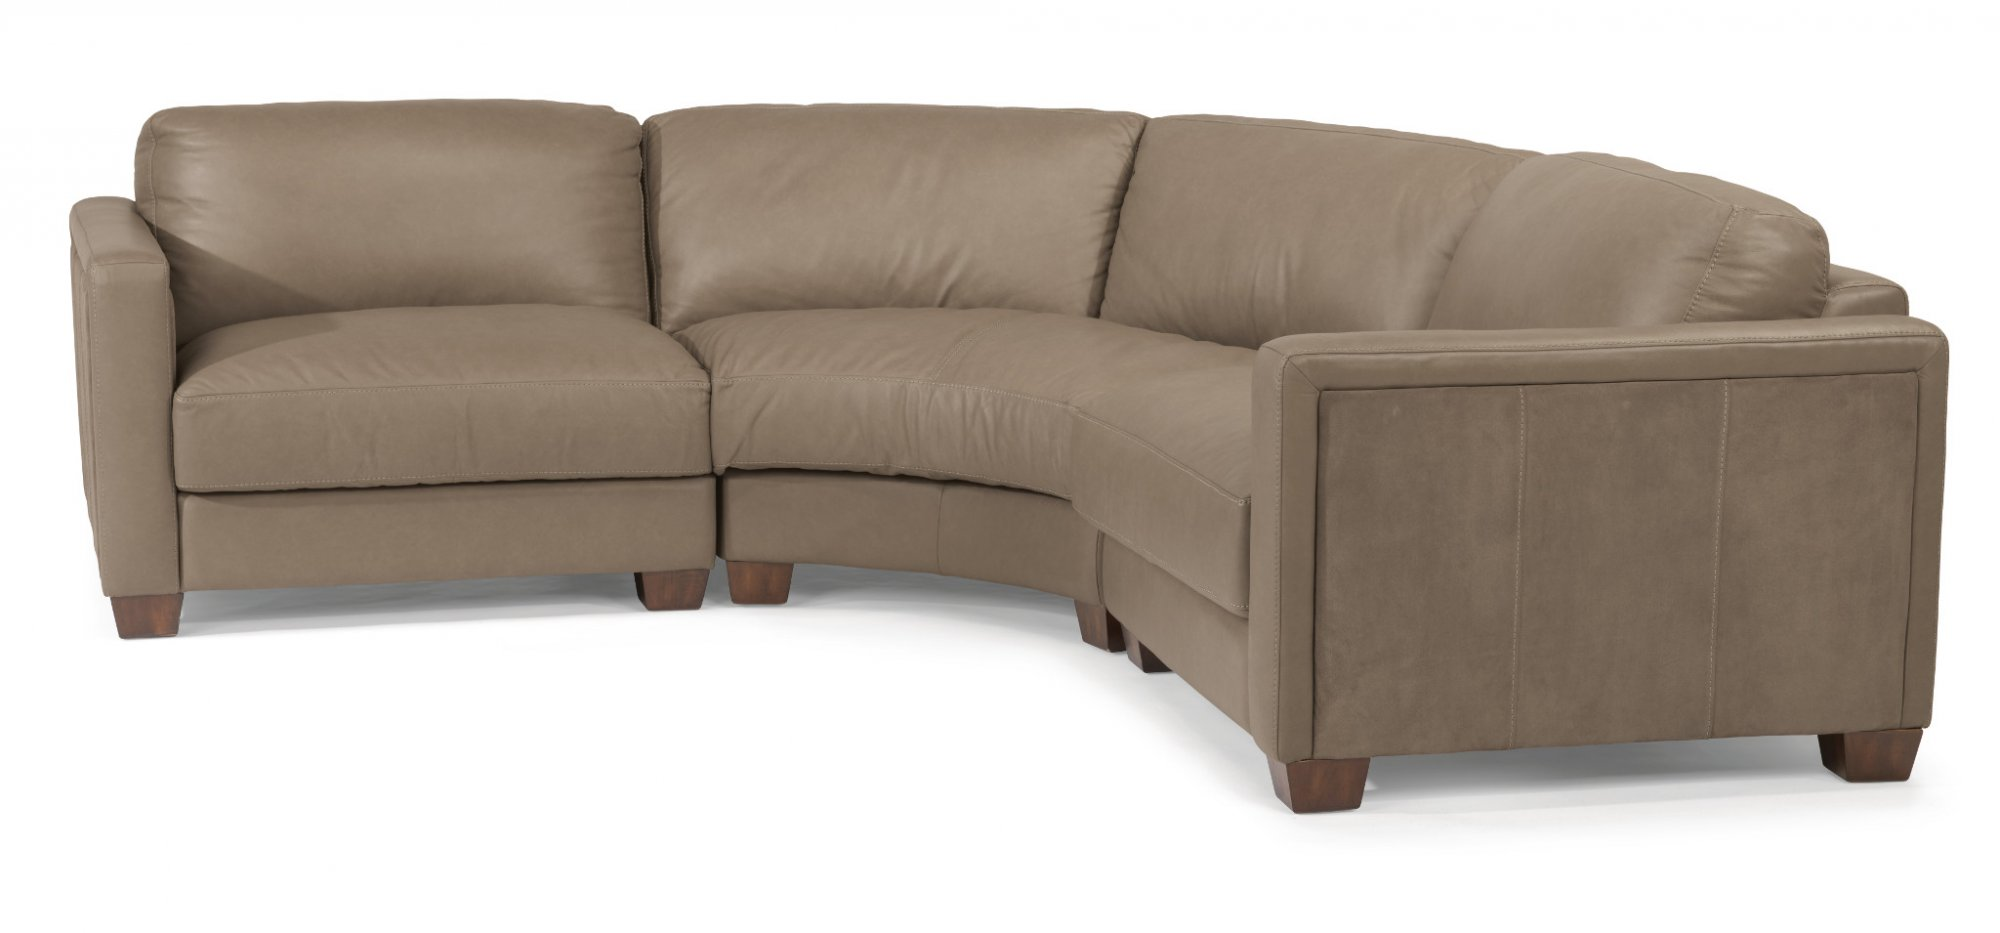 item dealer products sofa sectional ahfa digby contemporary l shape locator b flexsteel